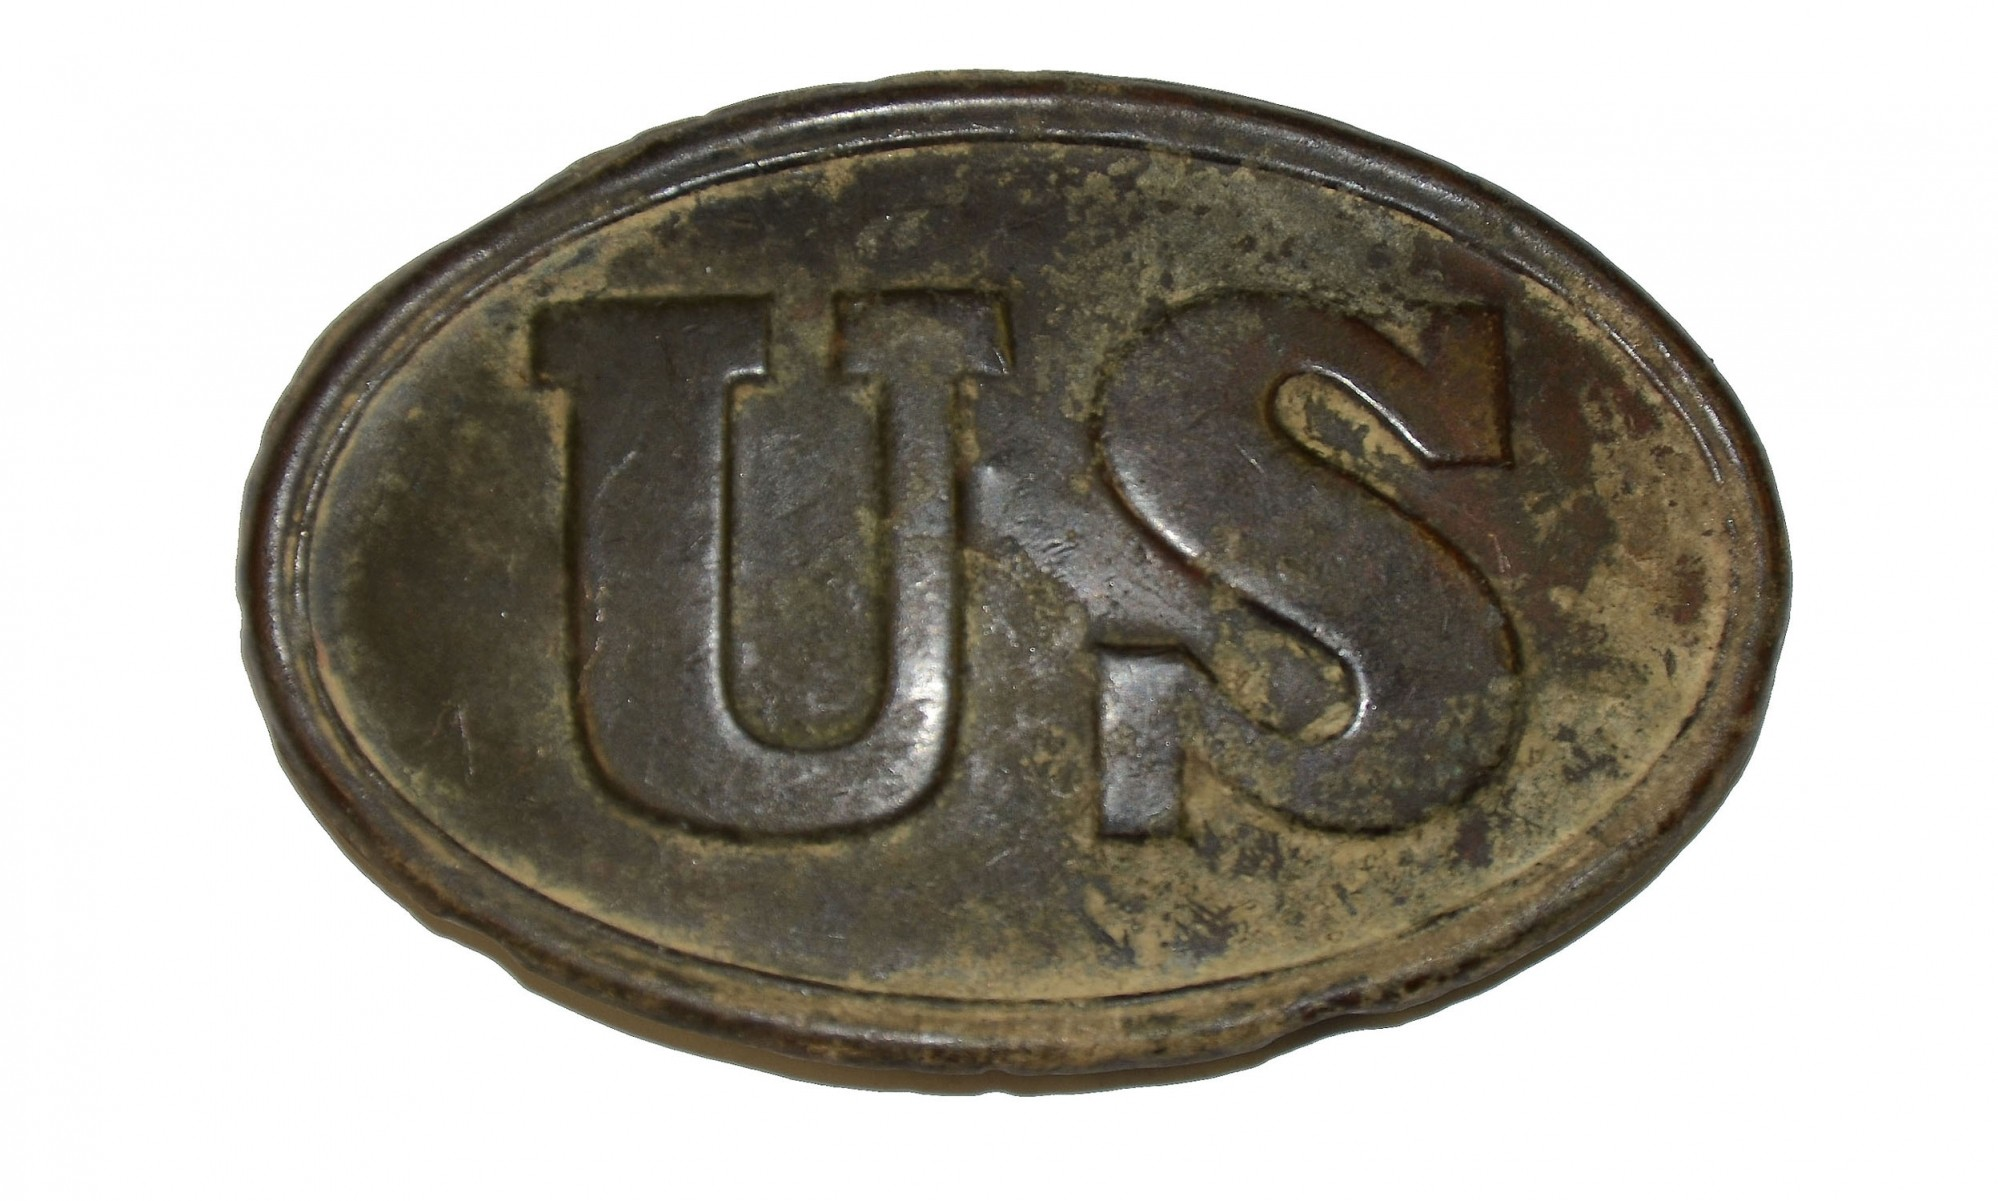 US PATTERN 1839 BELT PLATE FROM ROSENSTEEL GETTYSBURG COLLECTION